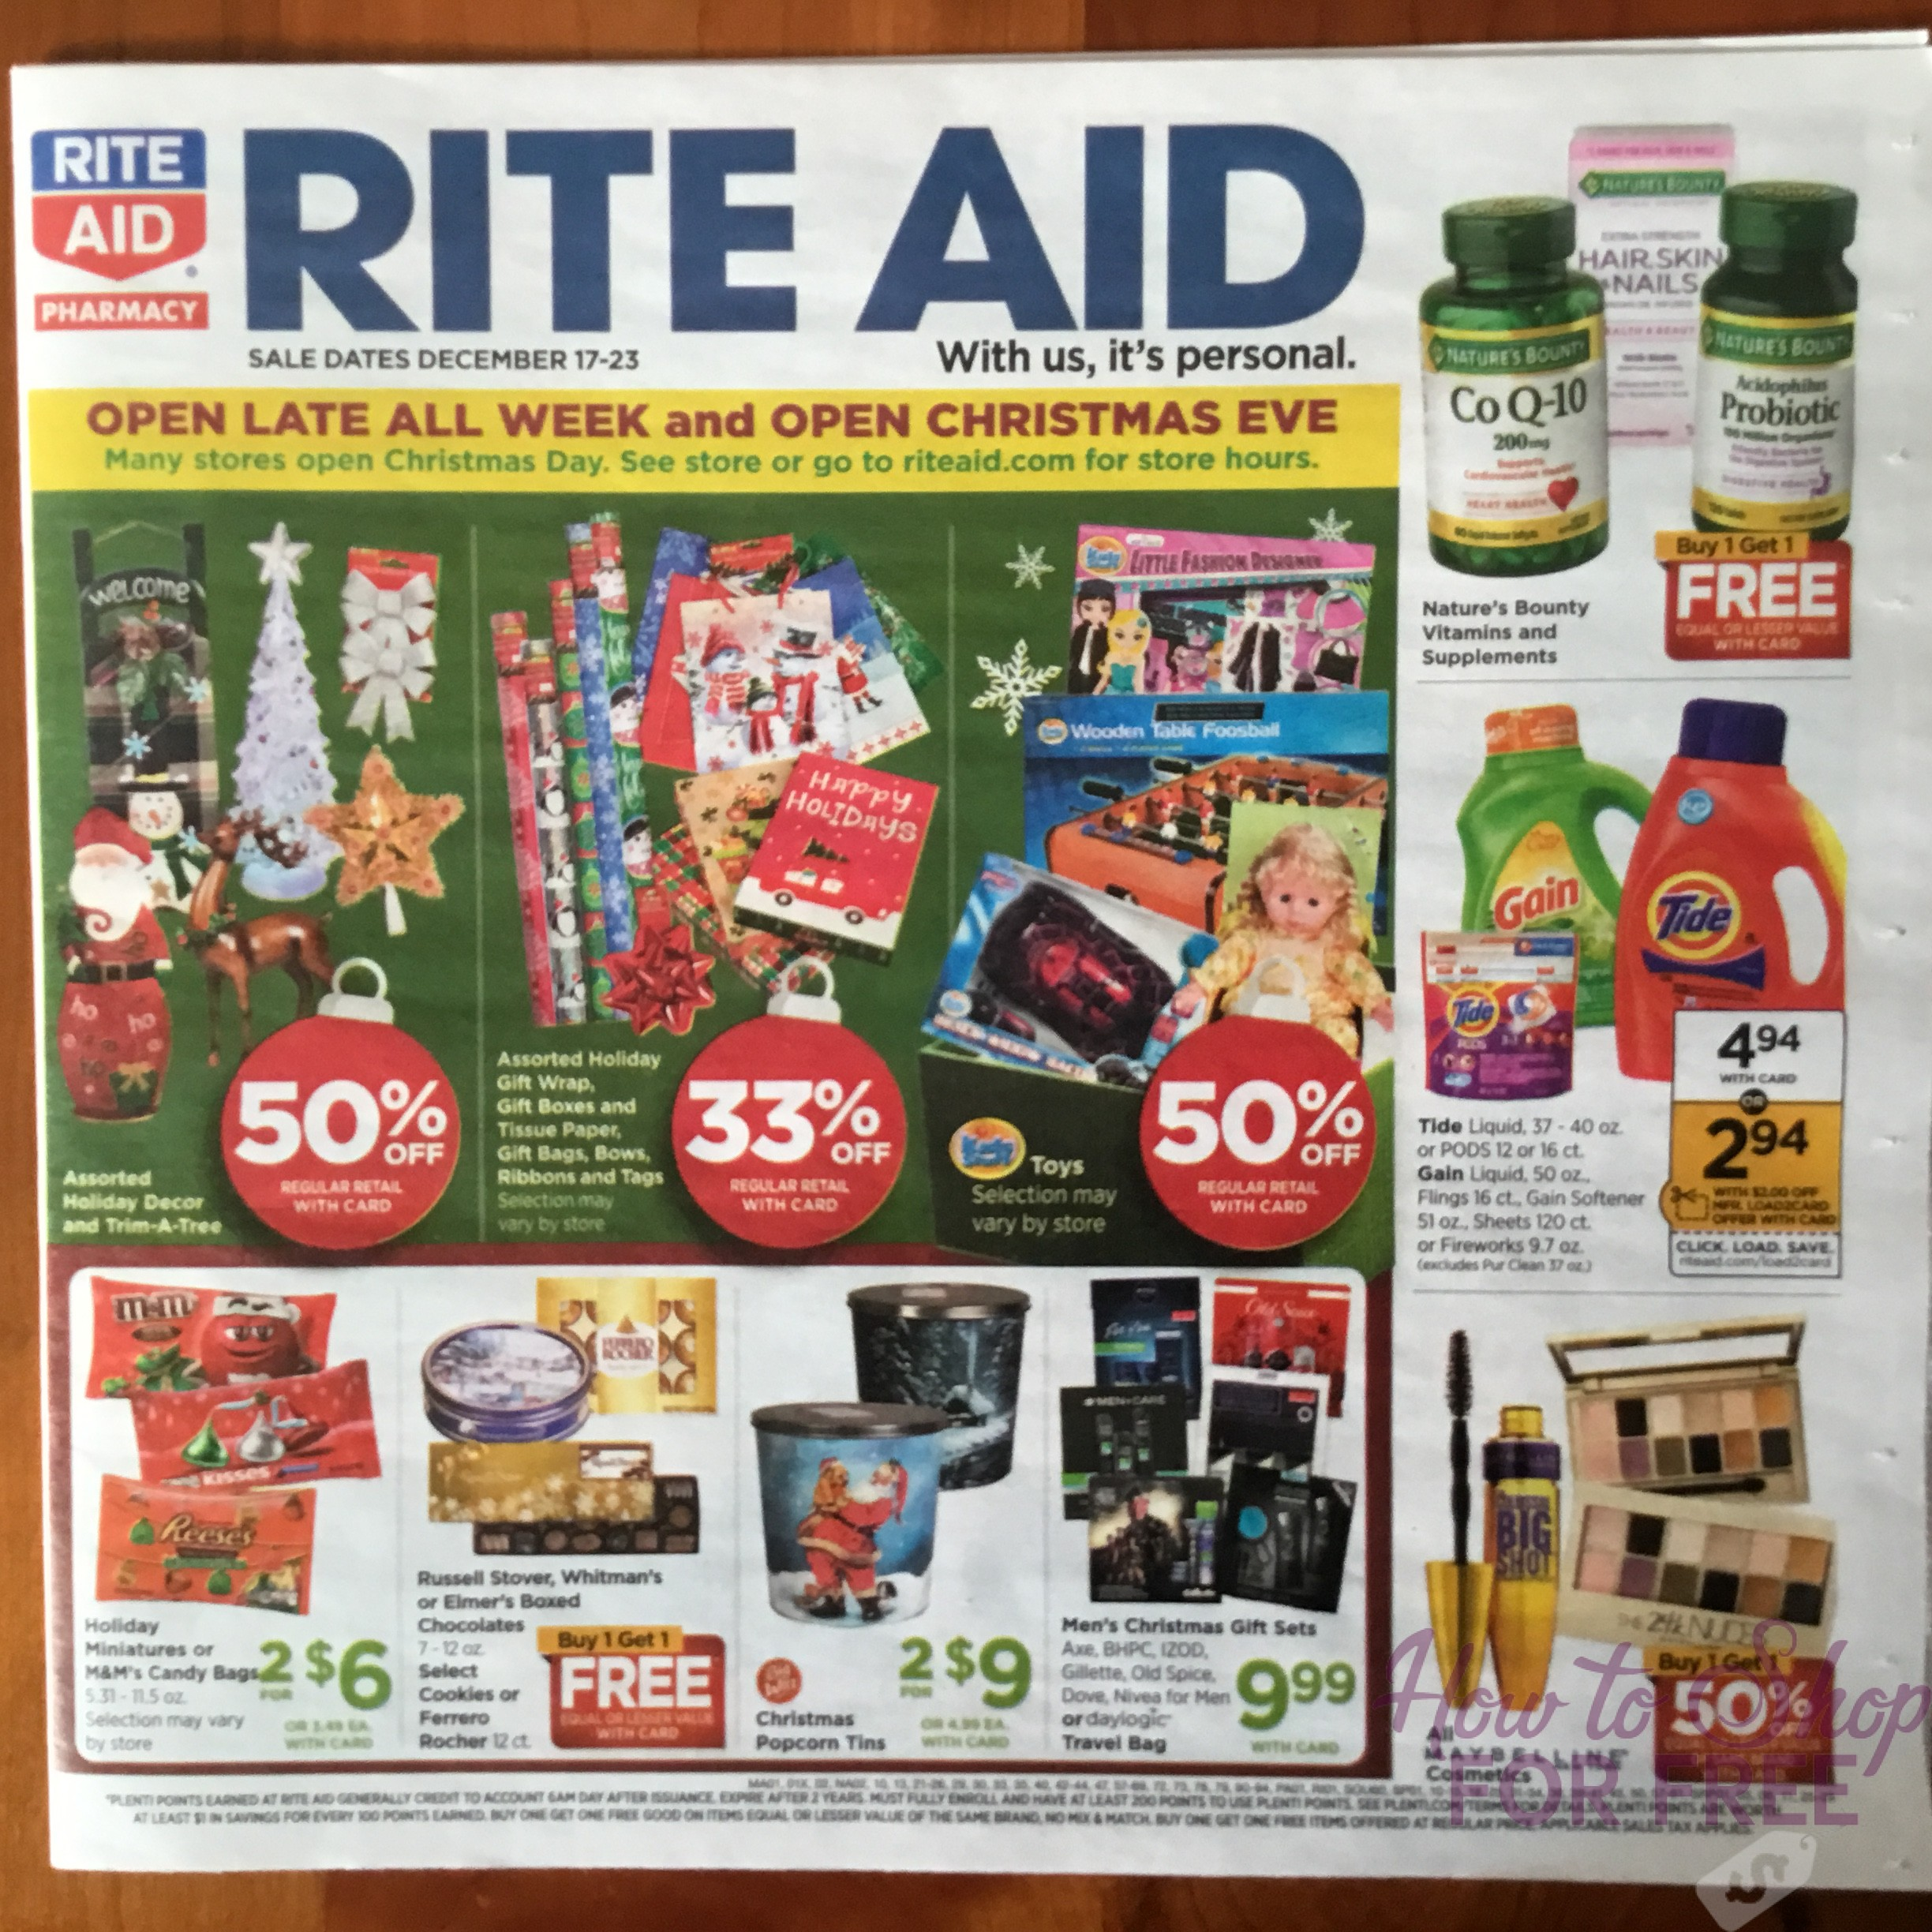 Rite Aid Christmas Hours.Rite Aid Ad Scan 12 17 12 23 How To Shop For Free With